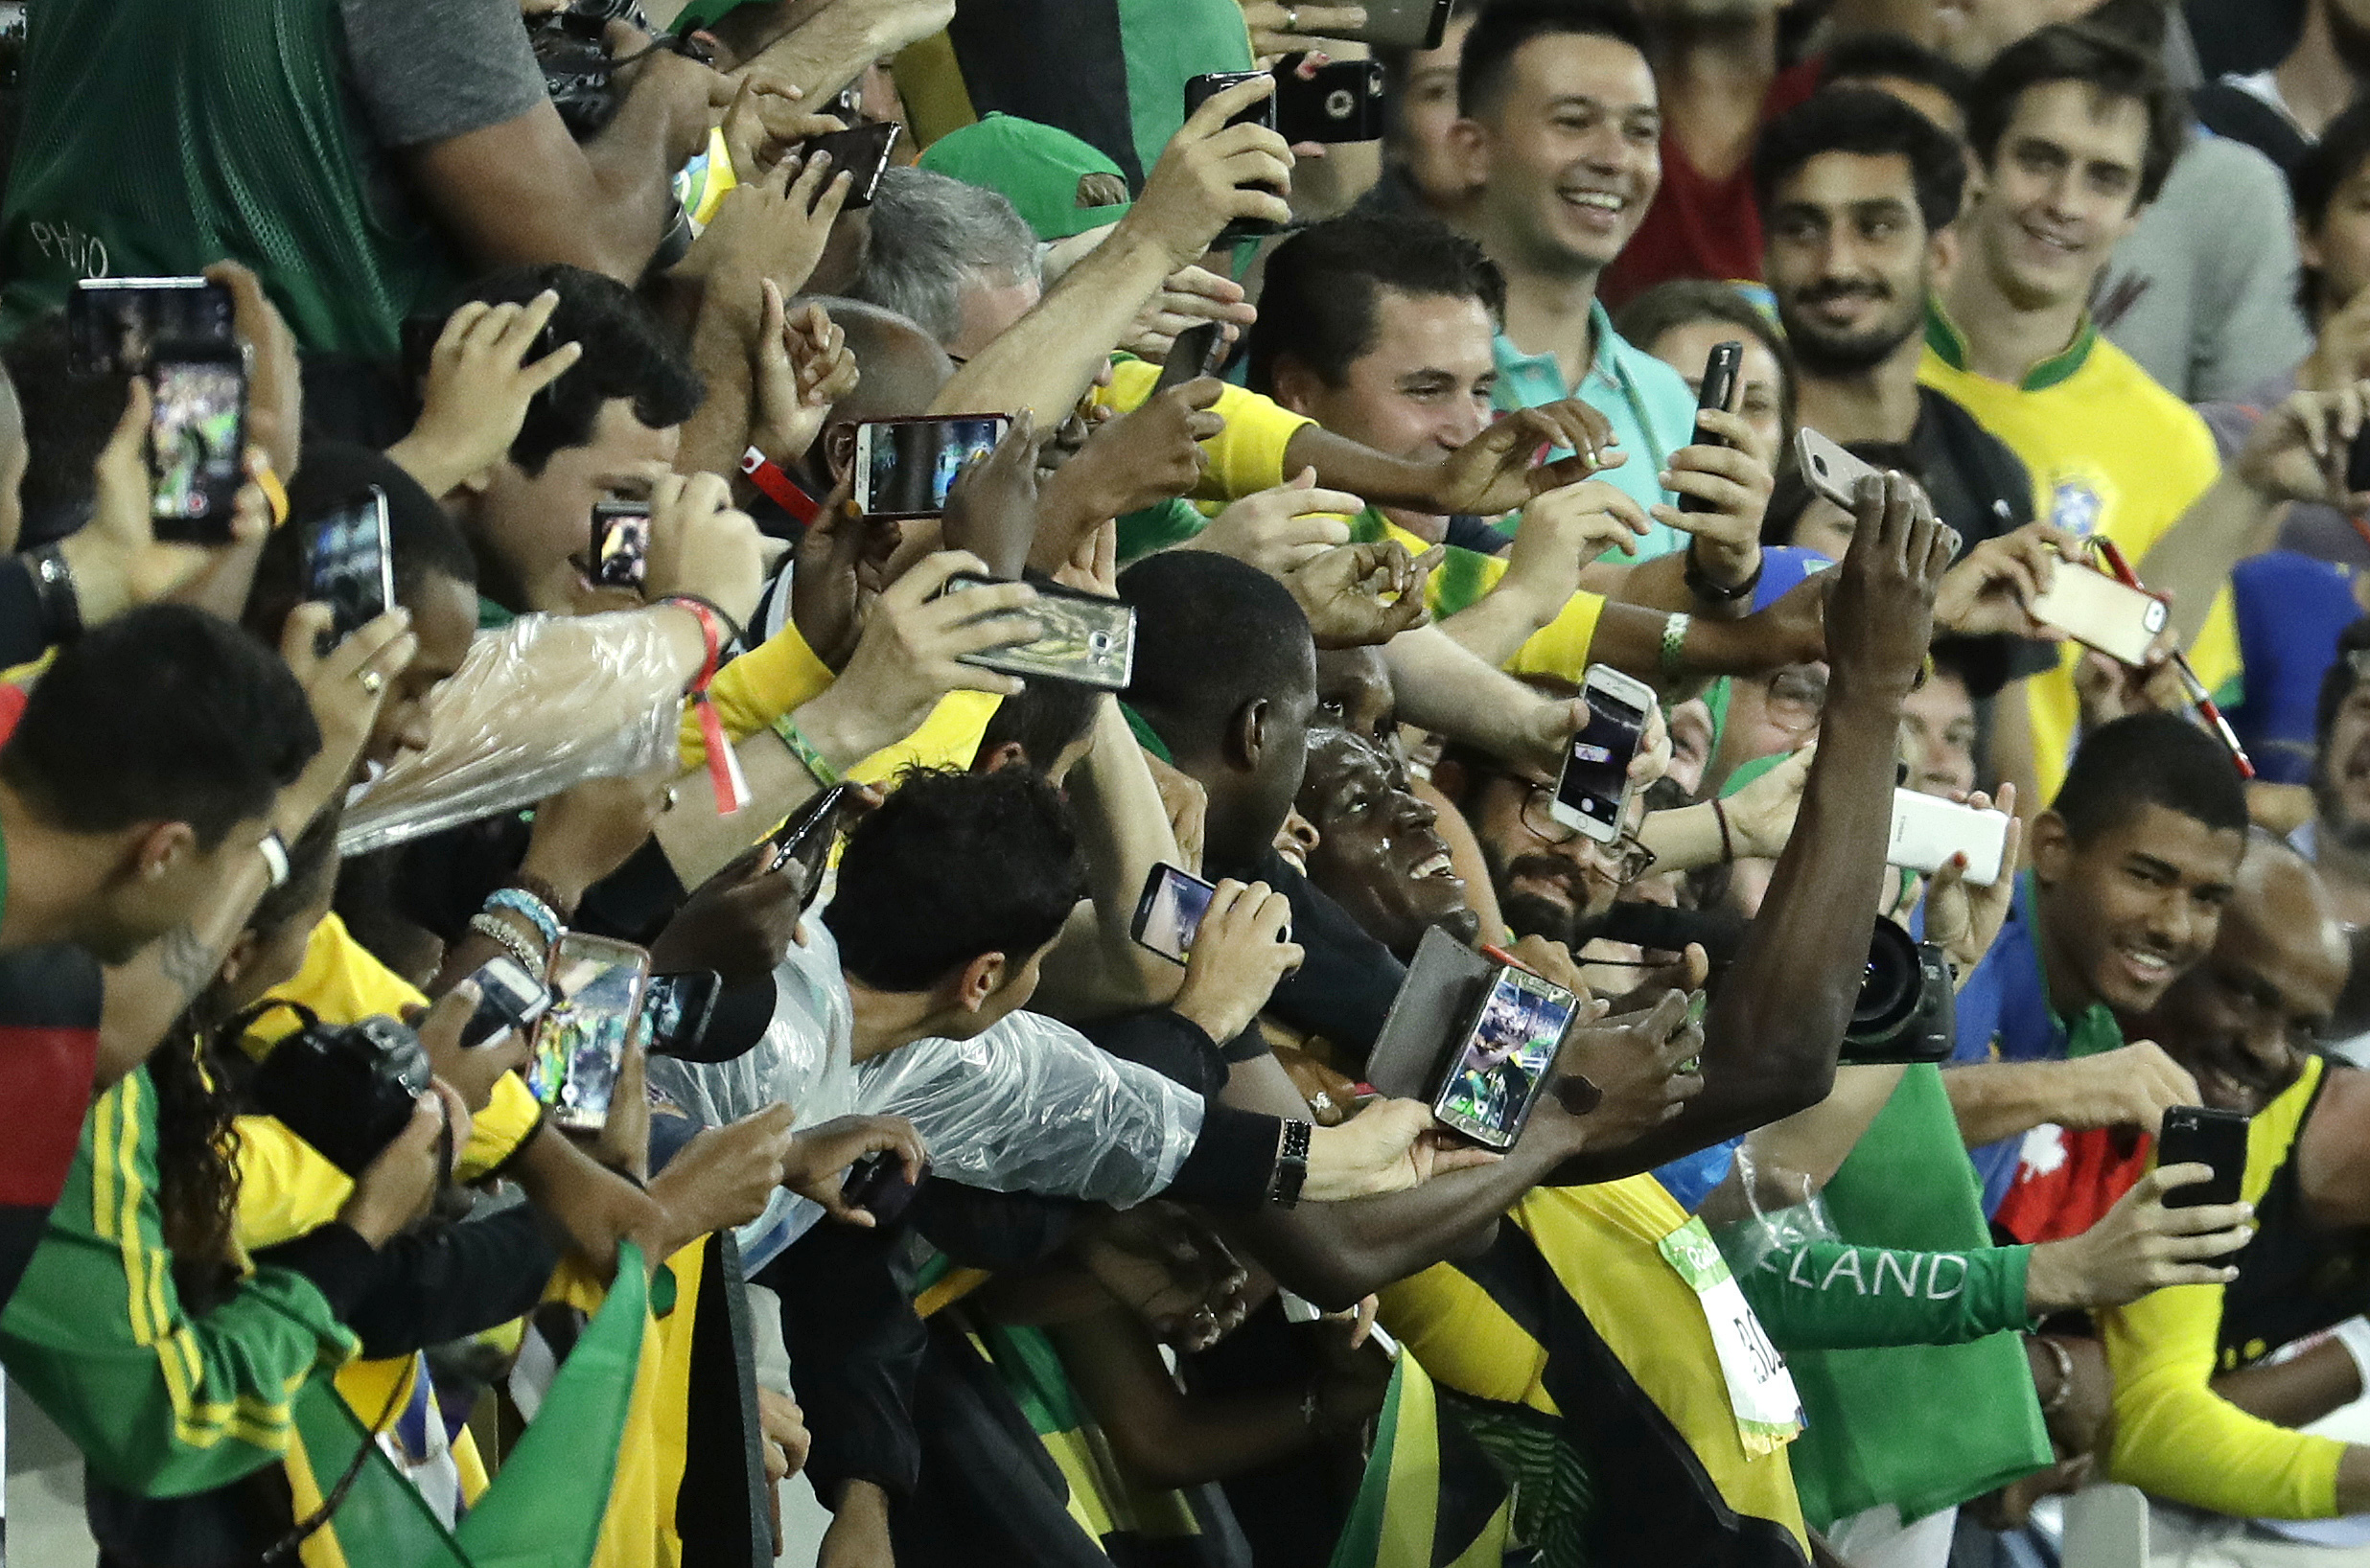 Jamaica's Usain Bolt celebrates with spectators after winning the gold medal in the men's 200-meter final at the 2016 Summer Olympics on Thursday. | AP